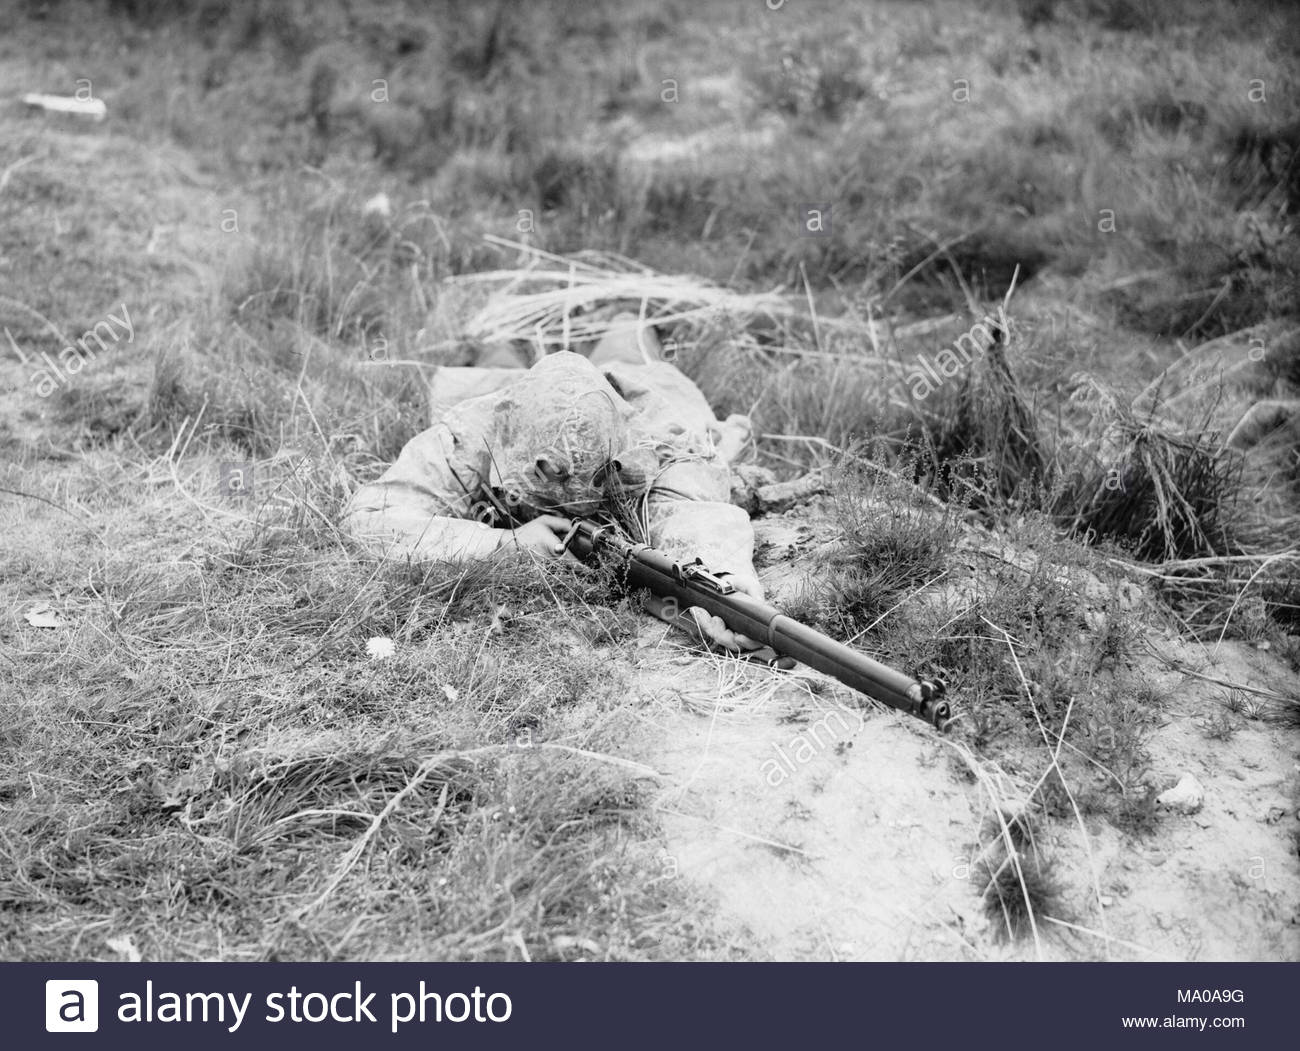 The British Army In United Kingdom 1939 45 Lovat Scout Prone Firing Position Dressed Sniper Camouflage Bisley Surrey 9 July 1940